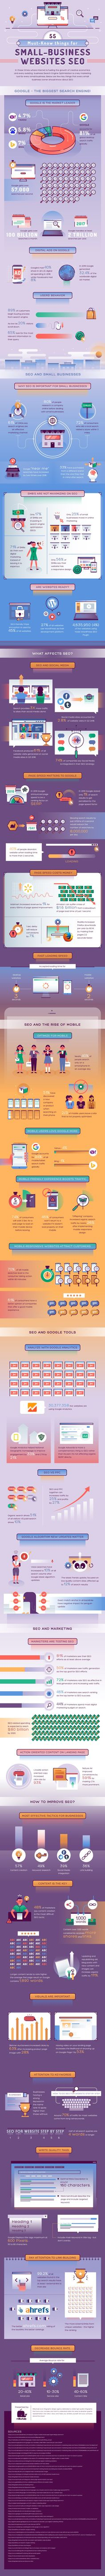 SEO is crucial for small businesses - this infographic provides an essential overview of the process to help optimize your approach.